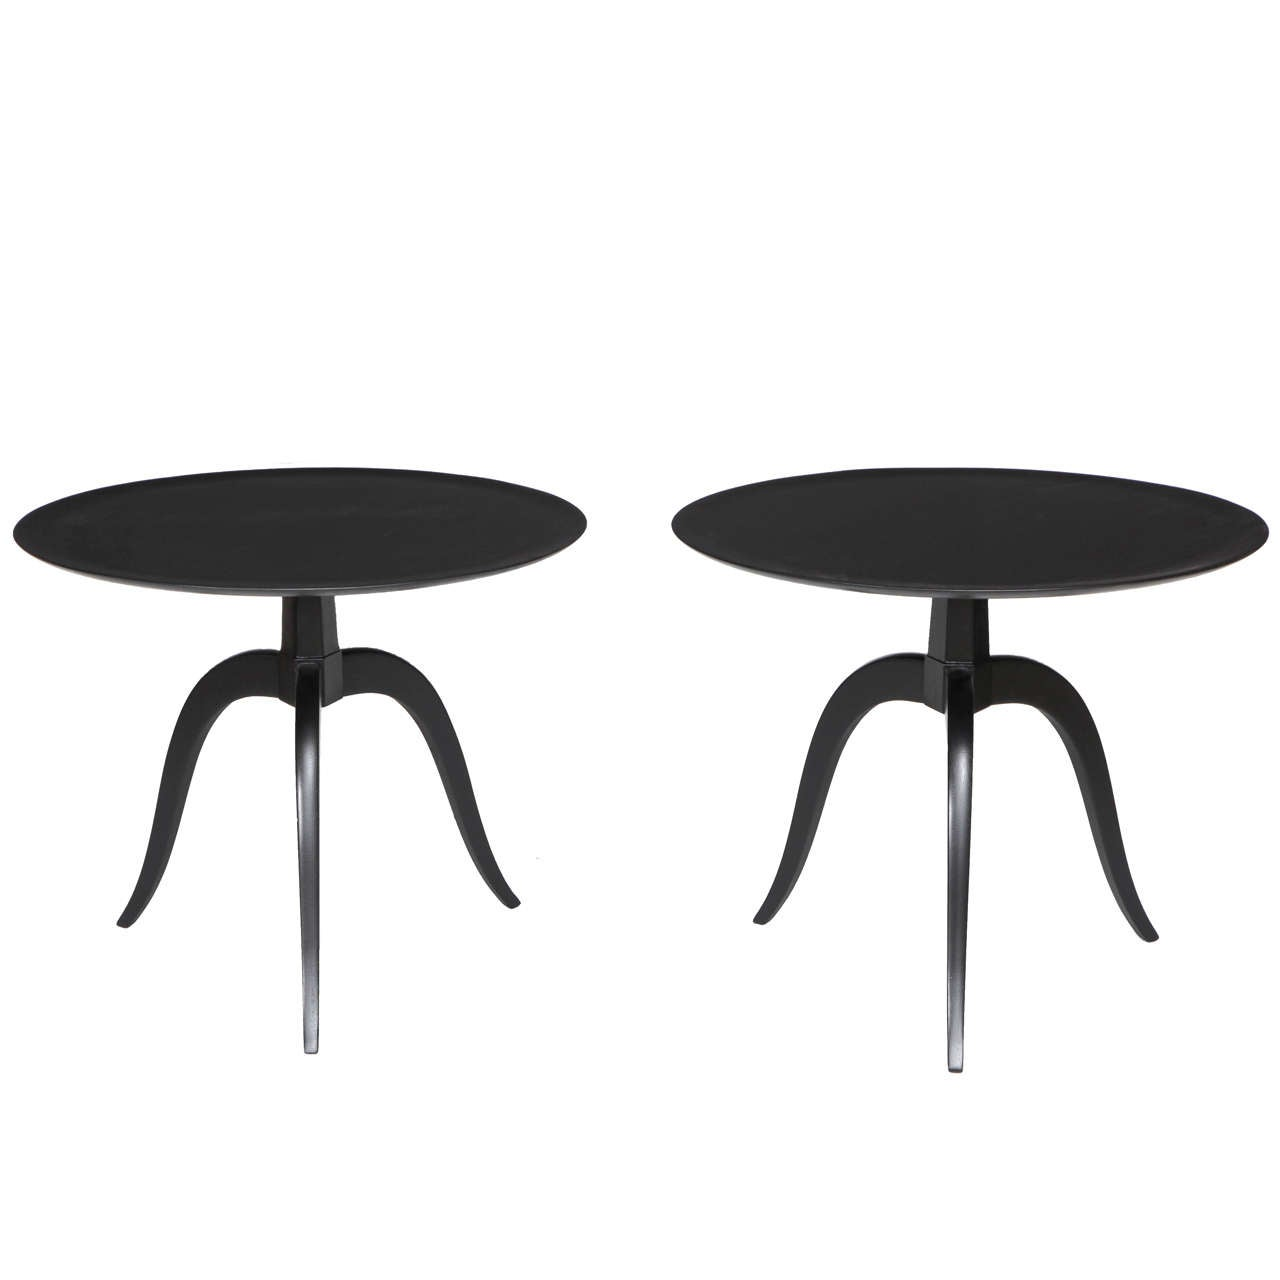 Ebonized Round End Table by Edward Wormley for Dunbar, 2 Available